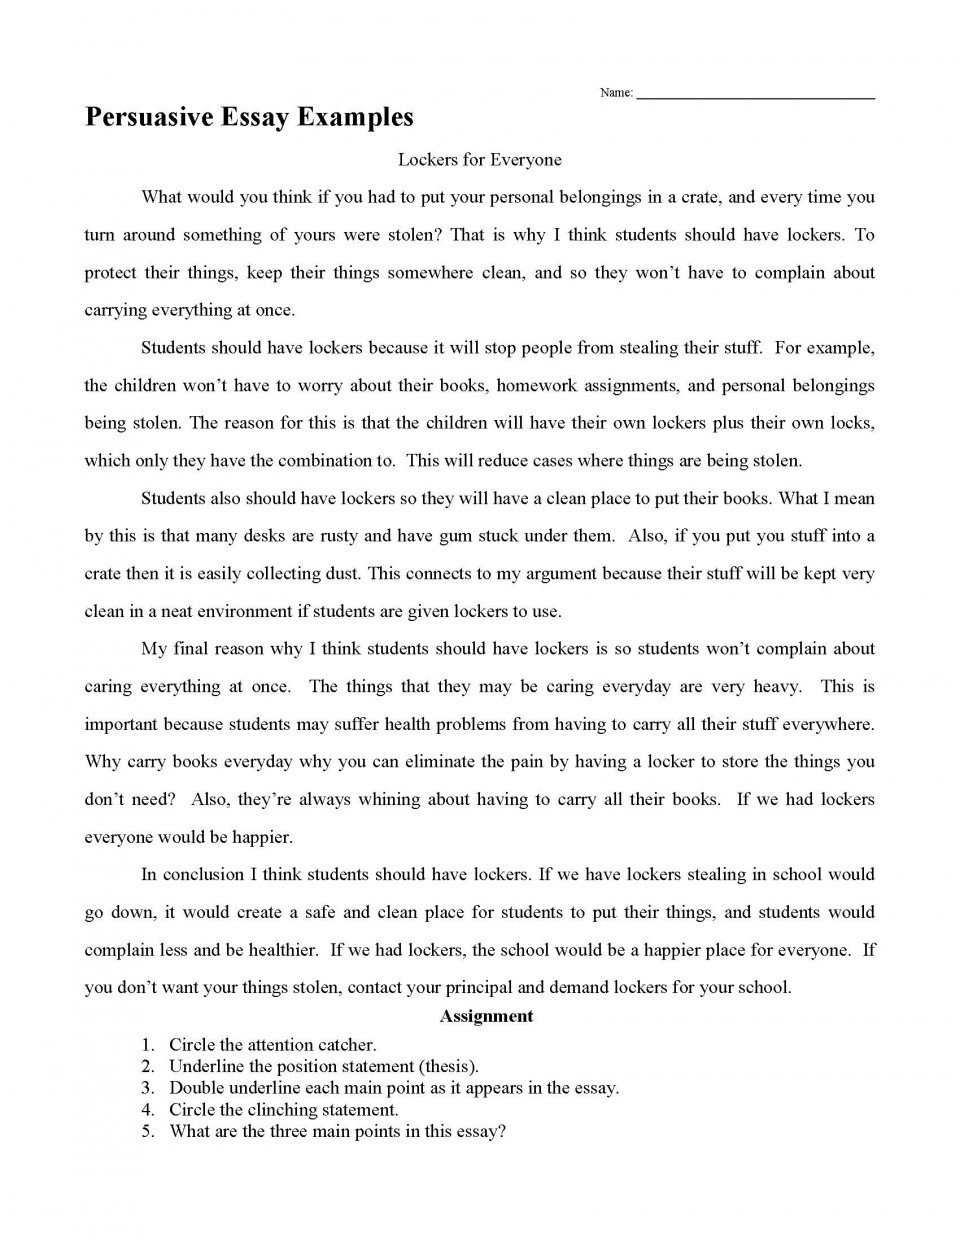 003 Essay Example Persuasive Examples Impressive Sample For 4th Grade 6 Topics 960